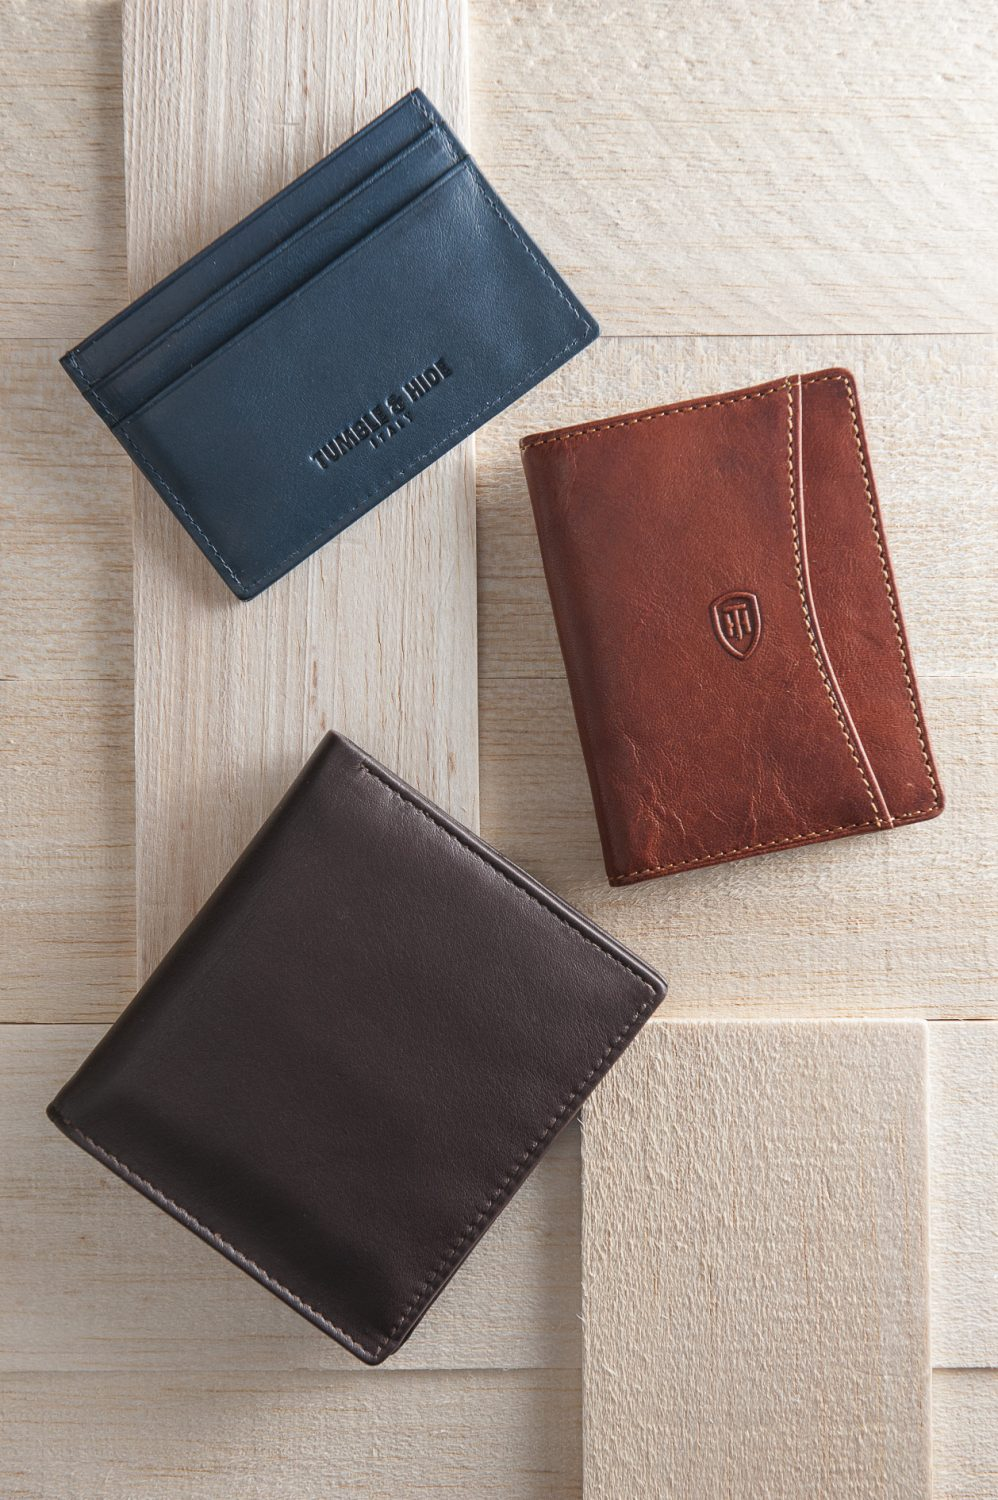 Tumble & Hide leather credit card holder, £21, leather travel pass holder, £19, 1642 two-fold leather wallet, £15, County Clothes, Canterbury 01227 765294 / Tenterden 01580 765159 / Reigate 01737 249224 www.countyclothesmenswear.co.uk